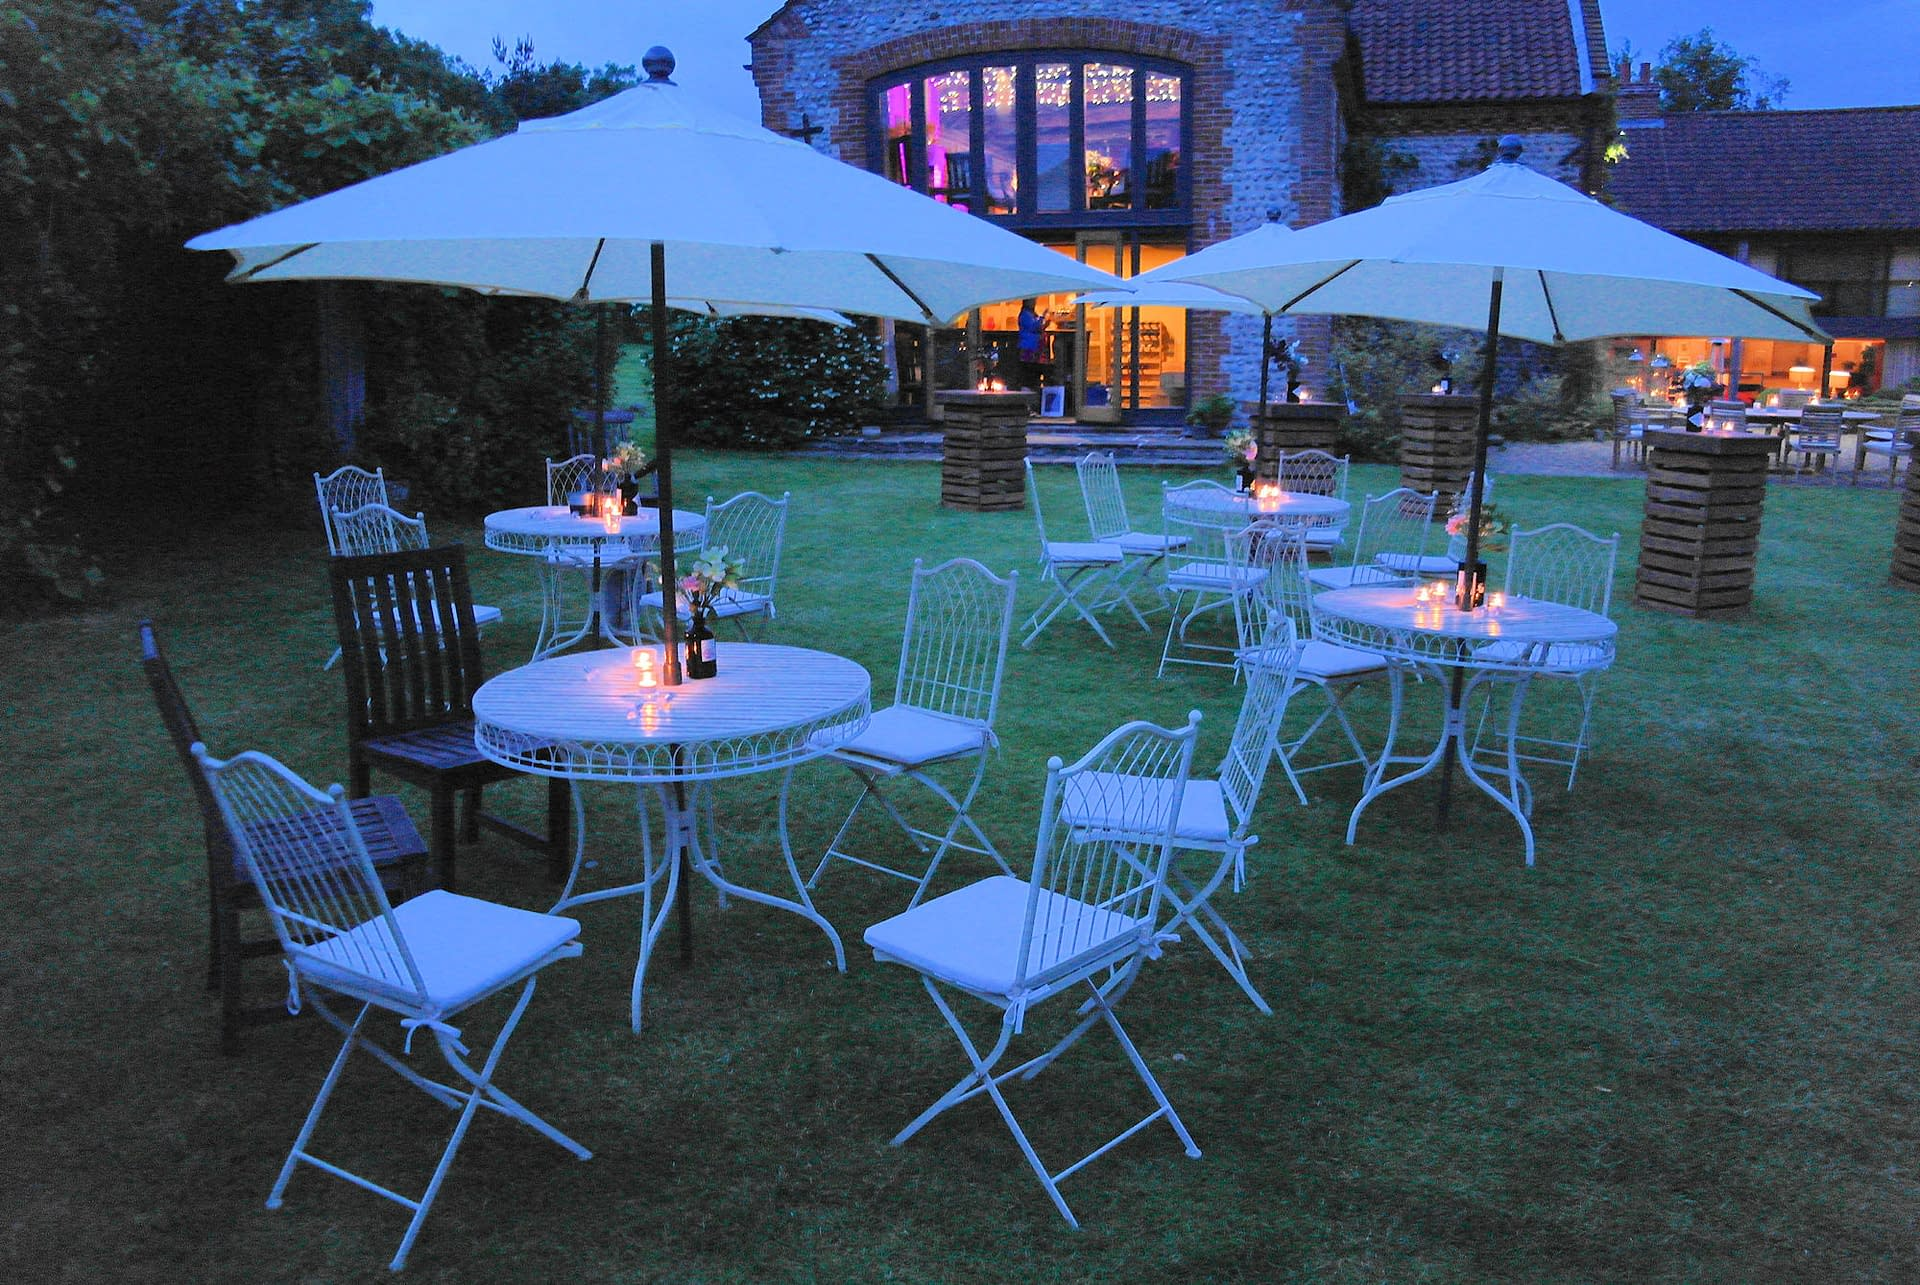 Vintage-style garden furniture and matching parasols, plus votive holders and fairy lights at Chaucer Barn, UK wedding venue